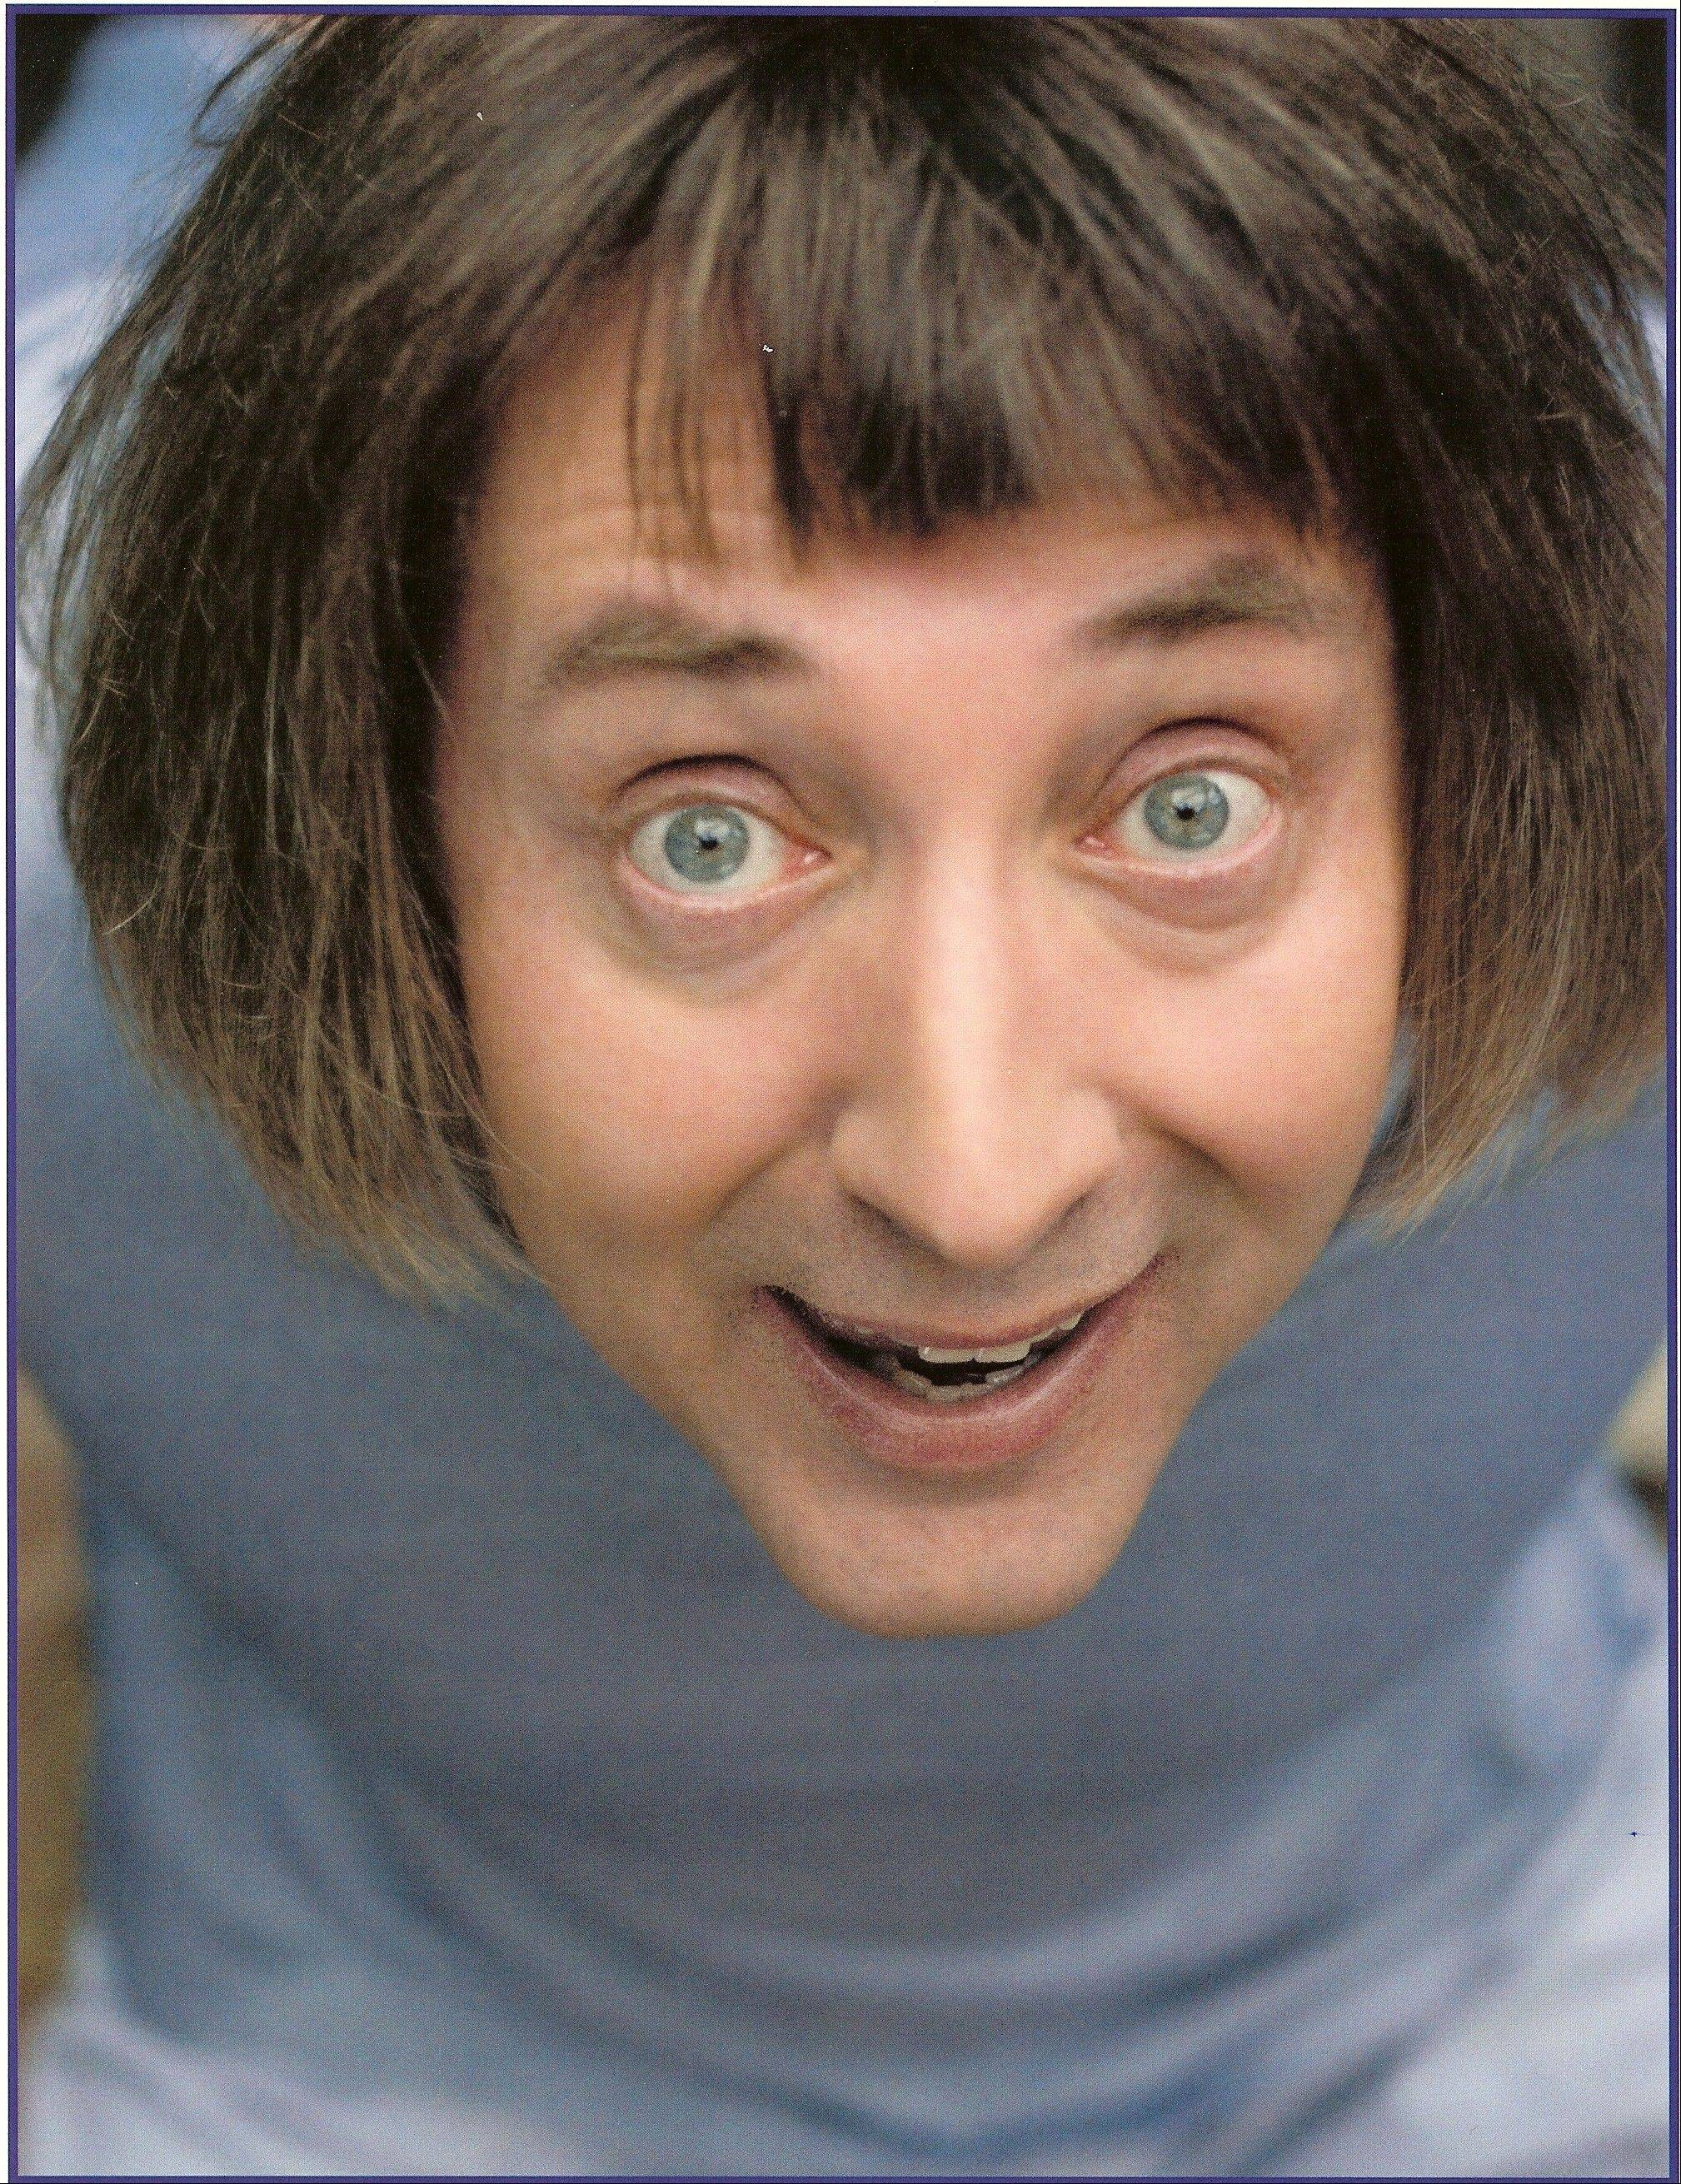 Comedian Emo Philips performs at Zanies in Chicago on Saturday and Sunday, Nov. 16-17.